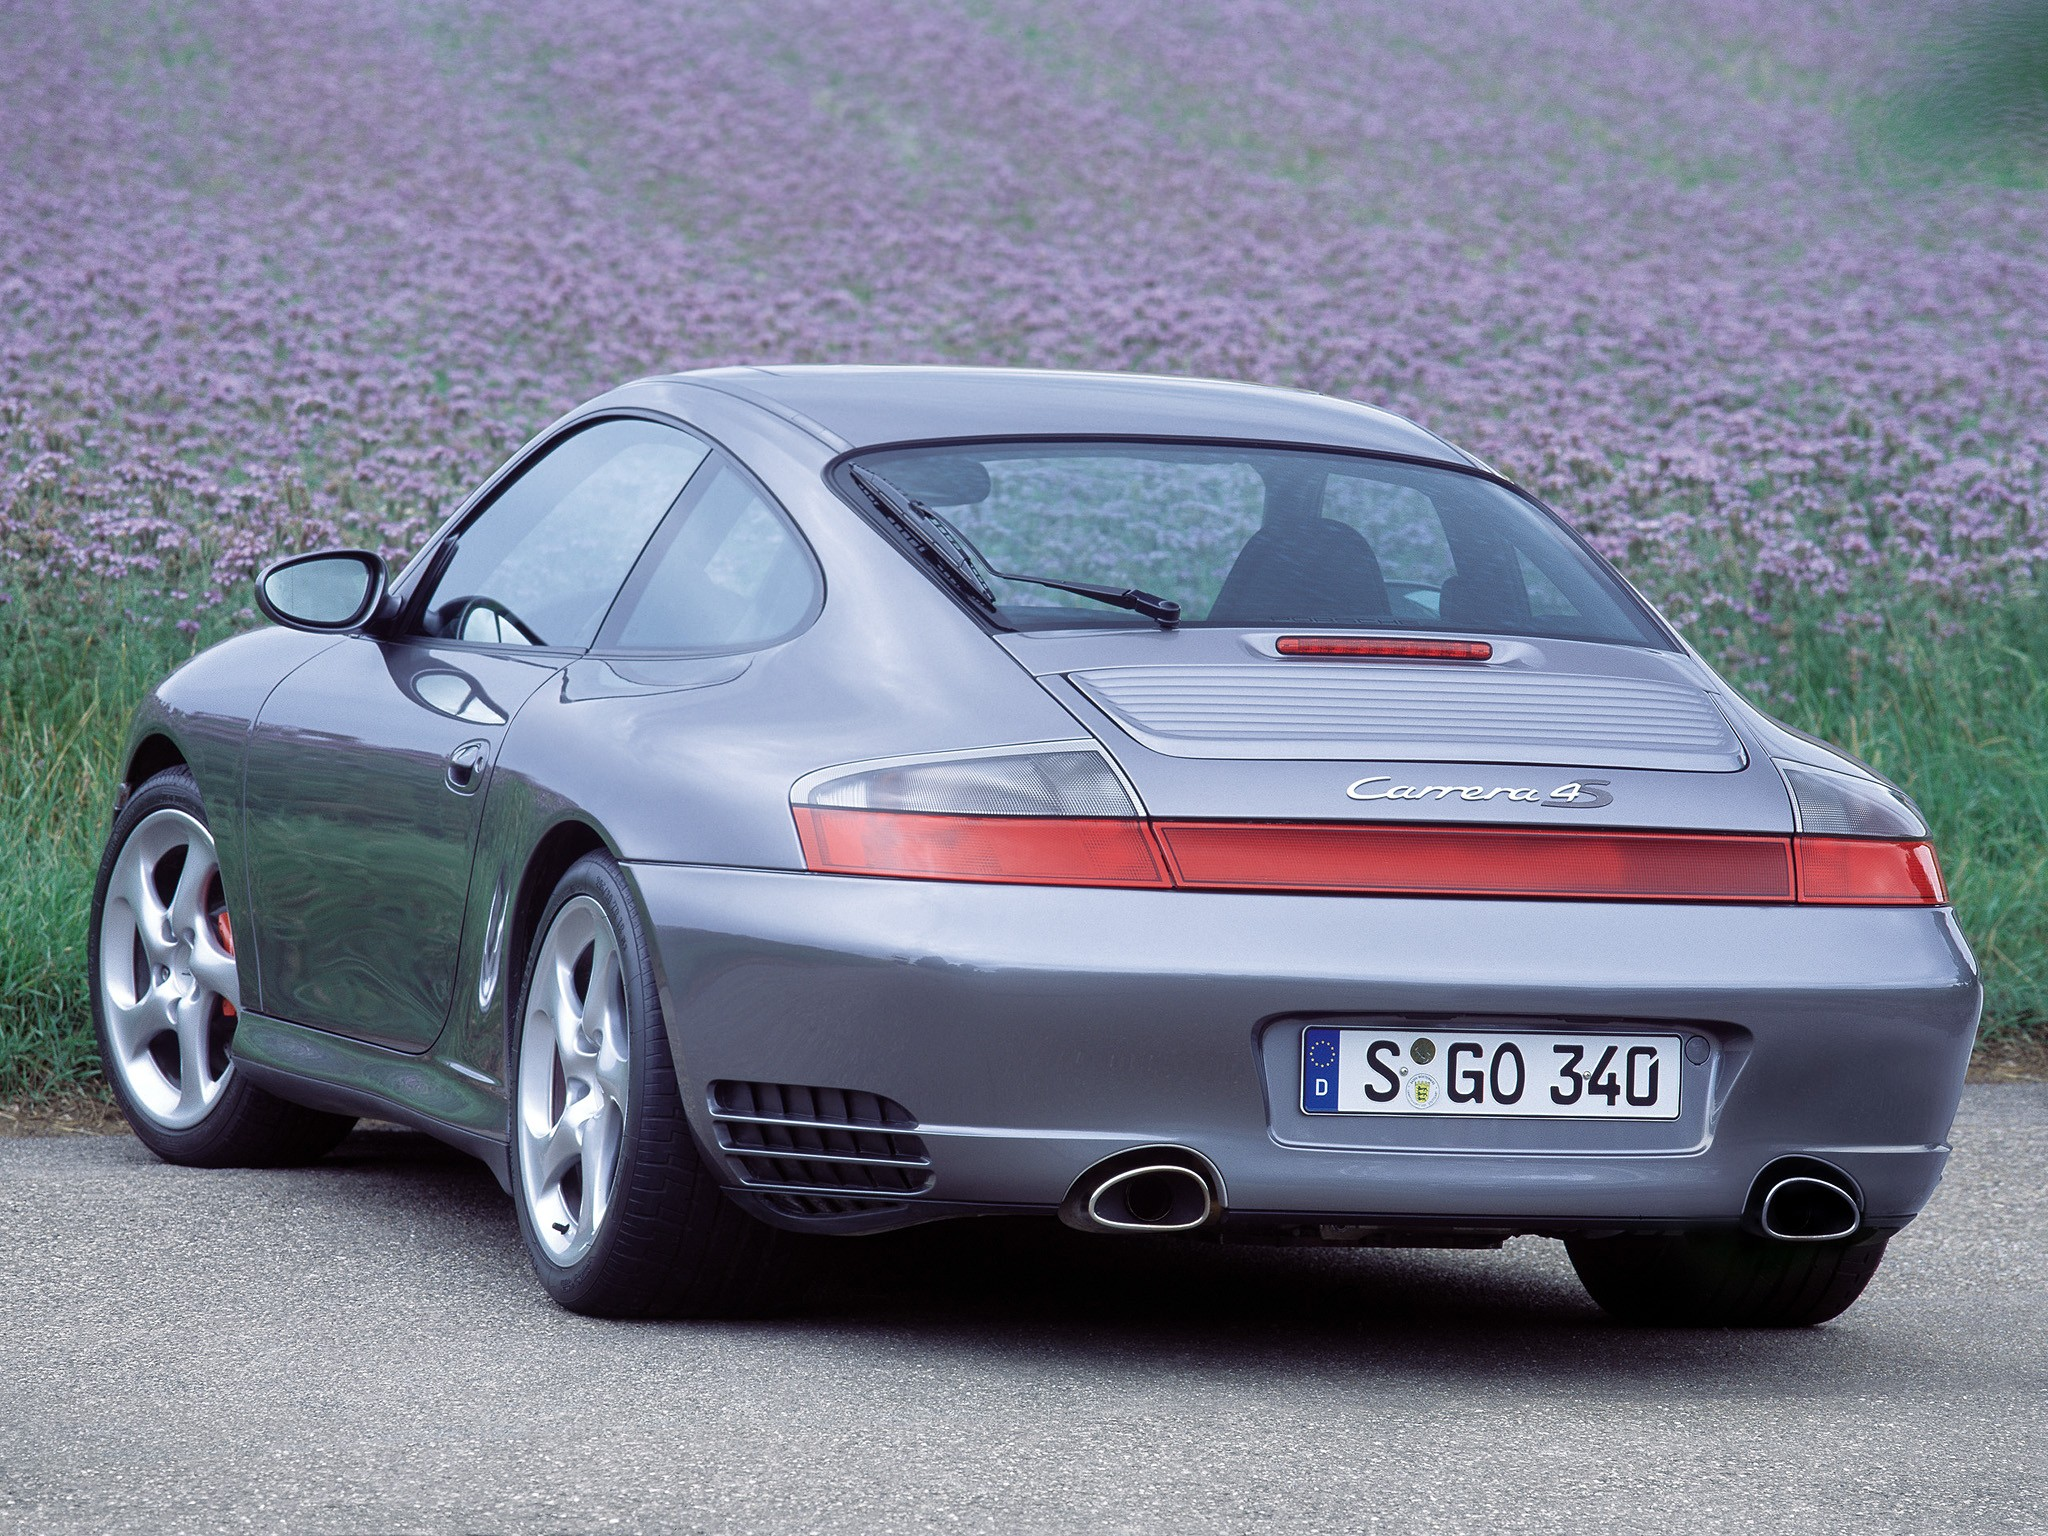 Modified Porsche 911 >> PORSCHE 911 Carrera 4S (996) specs - 2001, 2002, 2003, 2004, 2005 - autoevolution